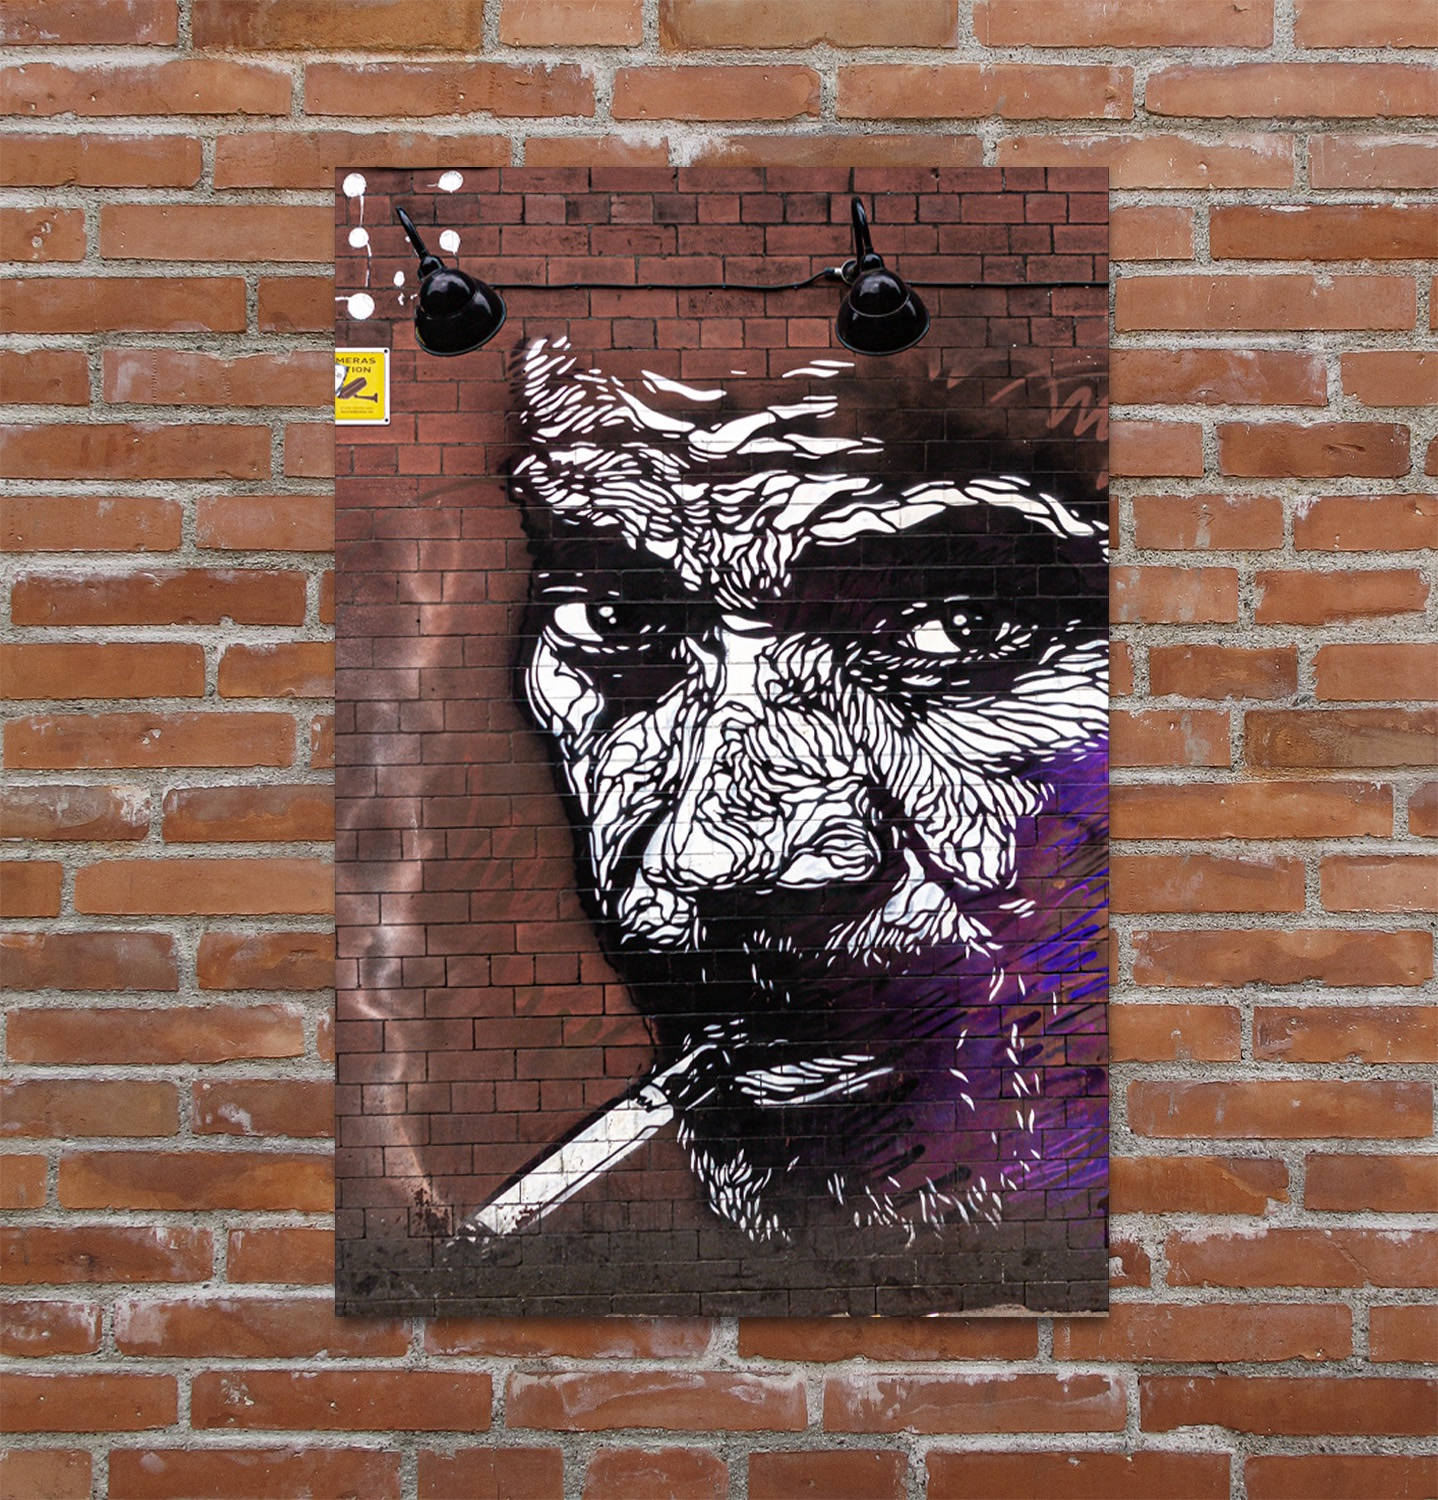 Graffiti artwork of the Smokin' Man in Manchester.